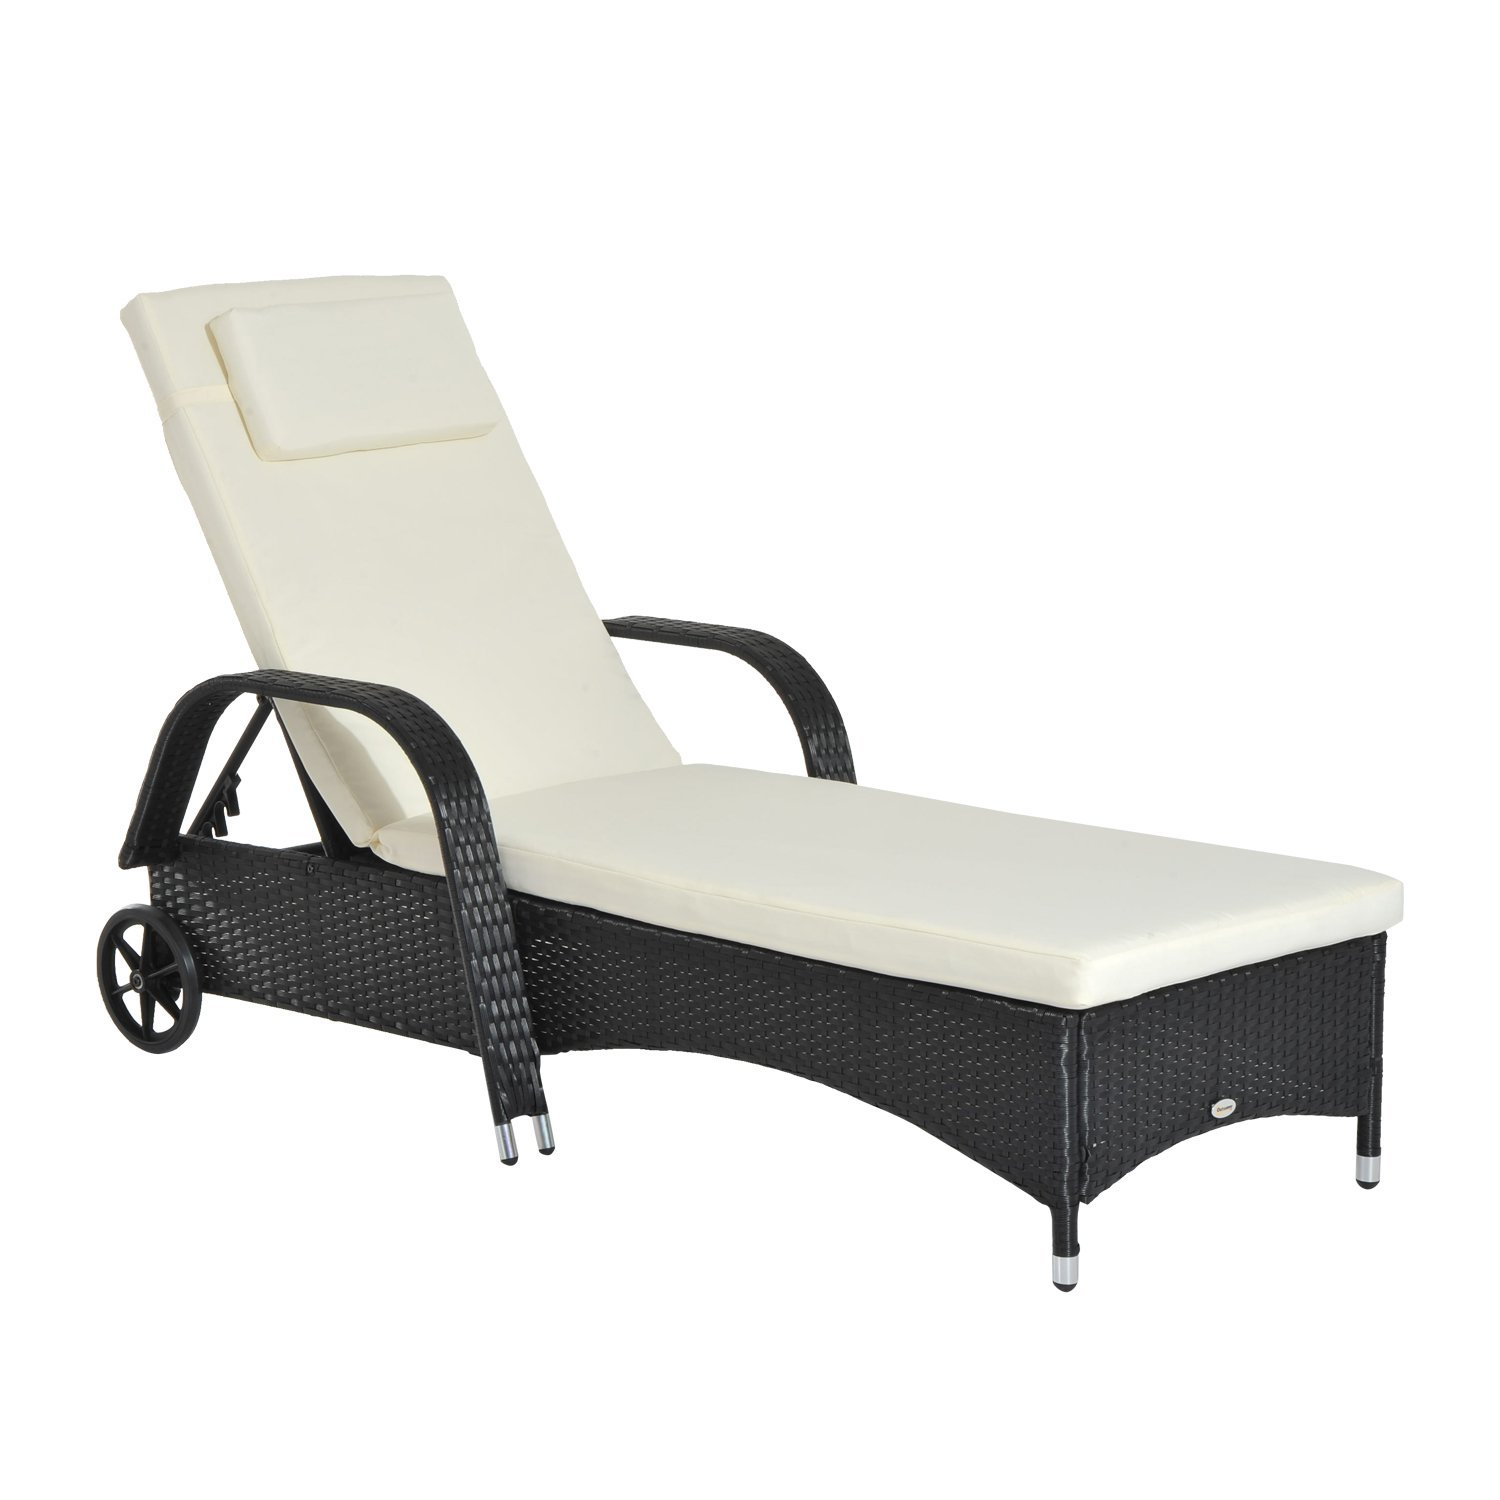 Outsunny Deck Chair Lounger Sun Height Adjustable With Wheels With Ruotete Rattan Garden